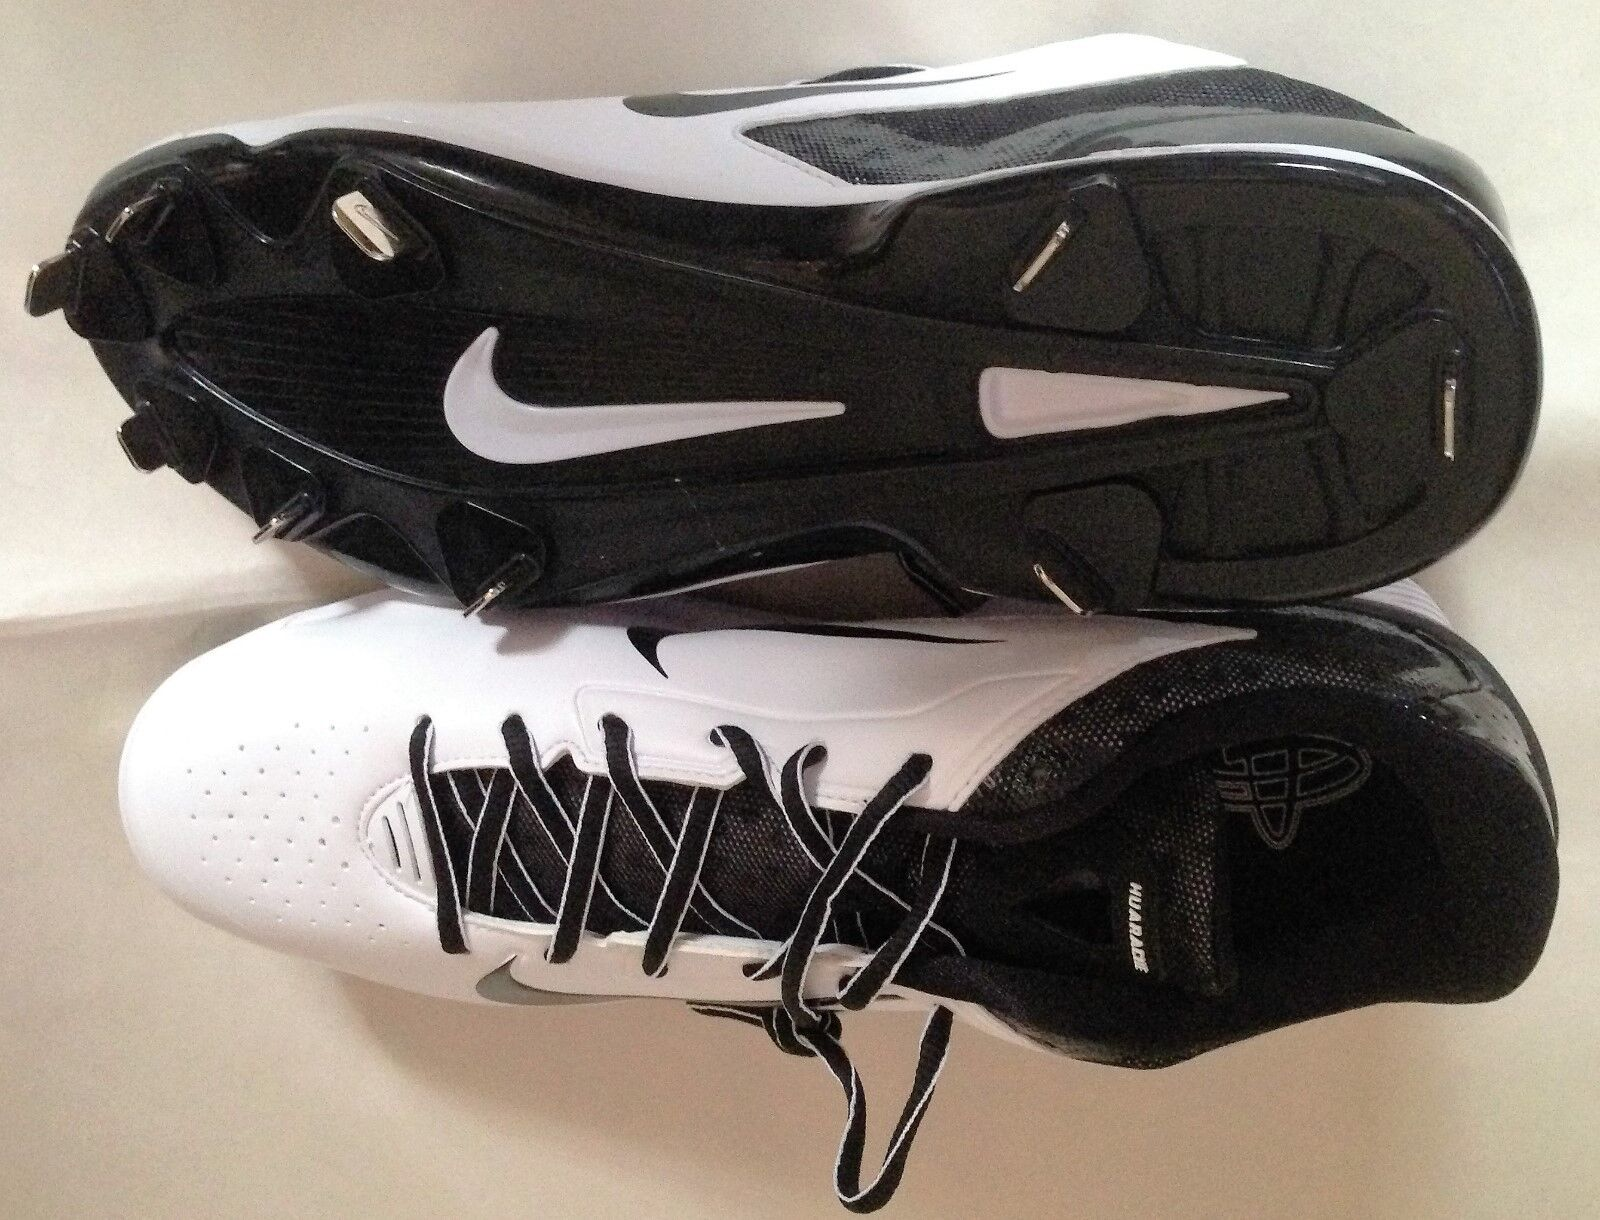 NEW NIKE MEN HUARACHE PRO LOW WHITE/BLACK METAL BASEBALL CLEATS SHOES 13.5 Price reduction Wild casual shoes